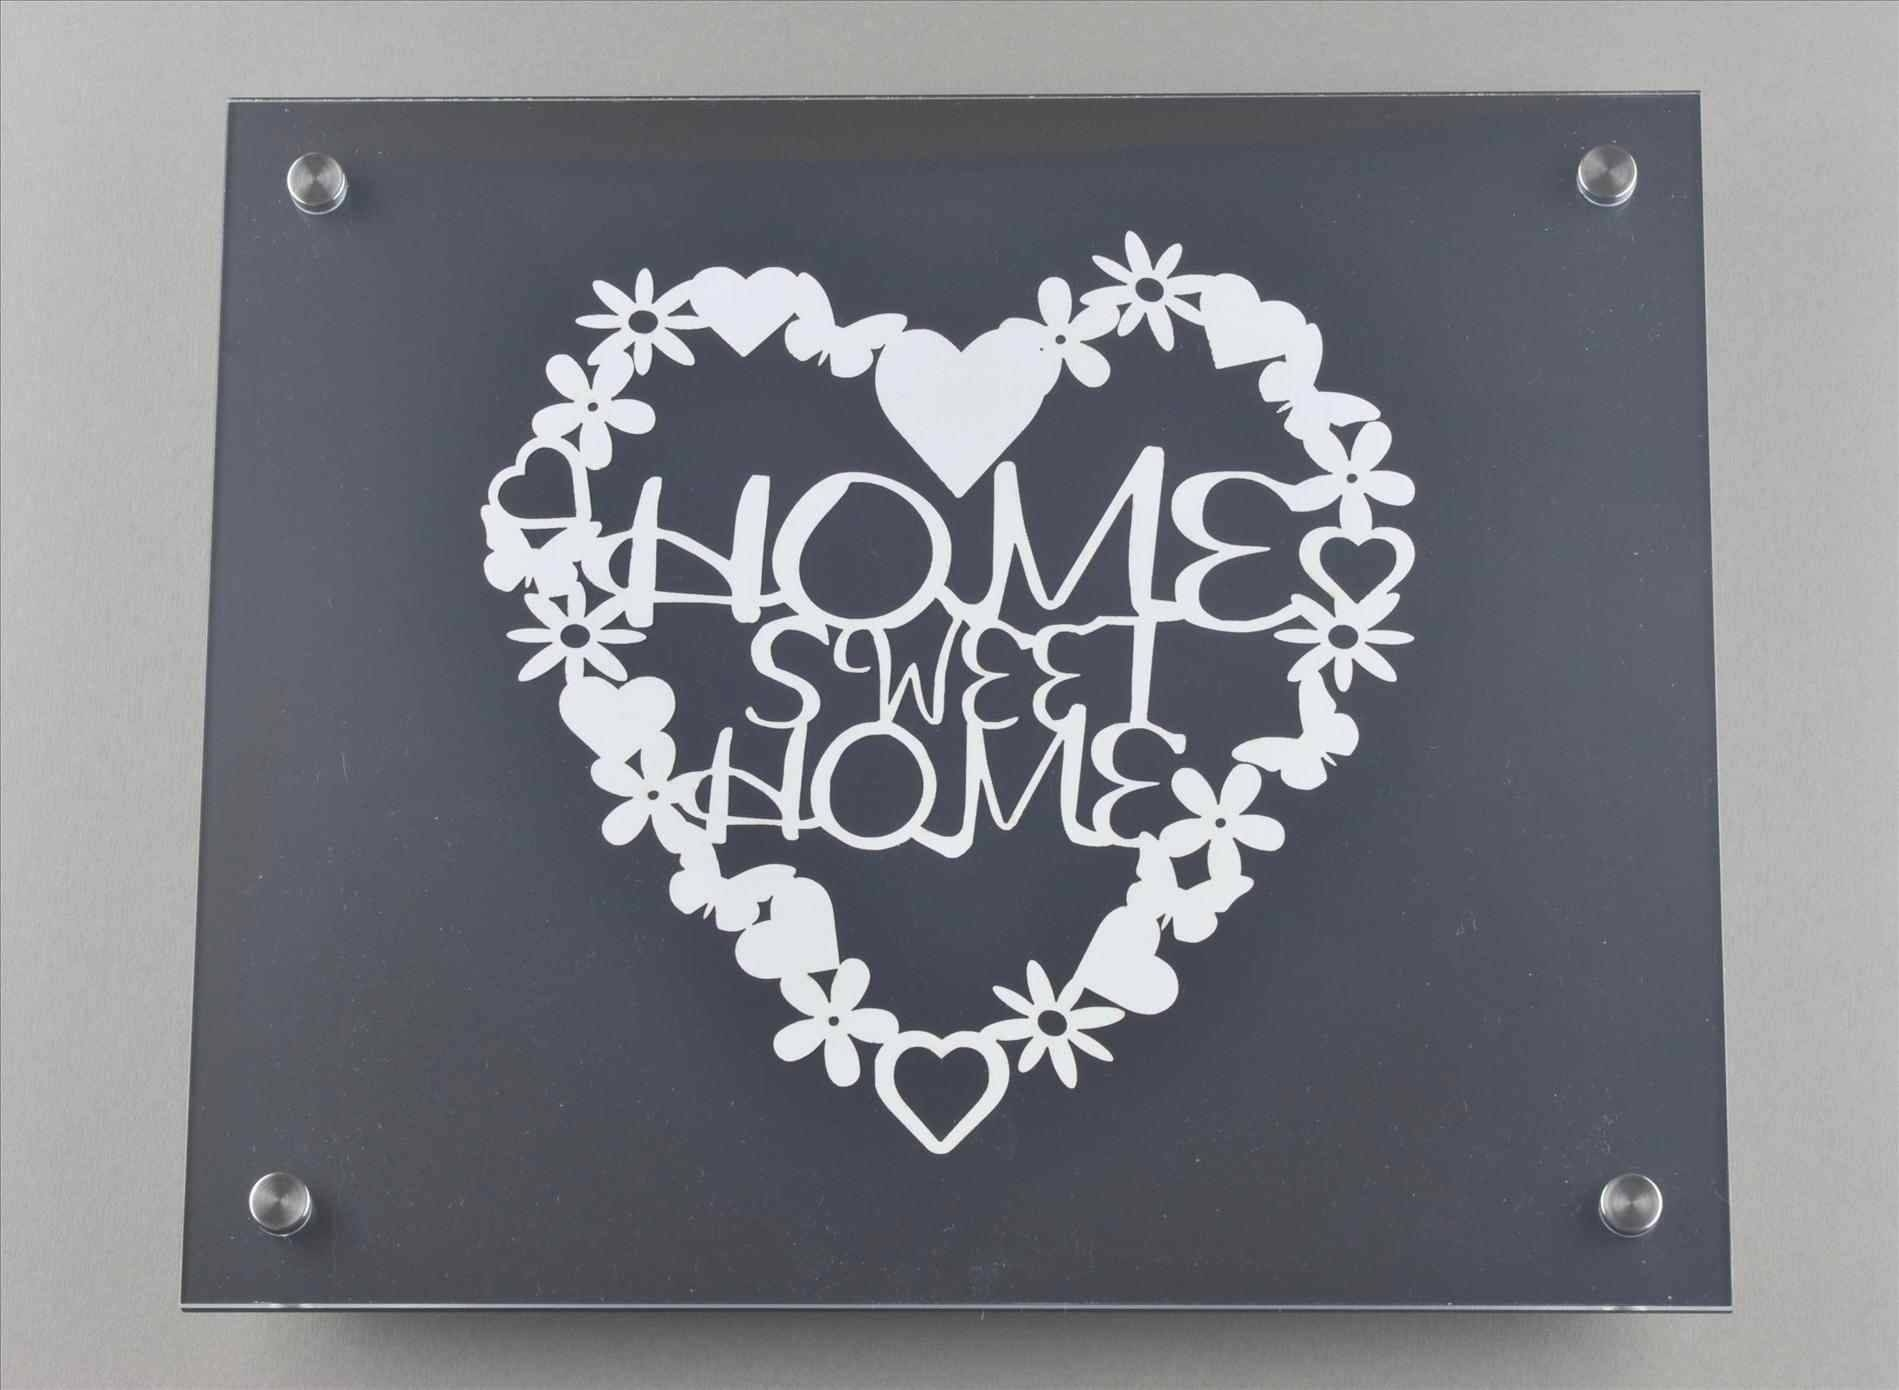 Ideas With Big Cake Decor Home Sweet Home Metal Wall Art Inside Most Popular Home Sweet Home Metal Wall Art (View 14 of 20)